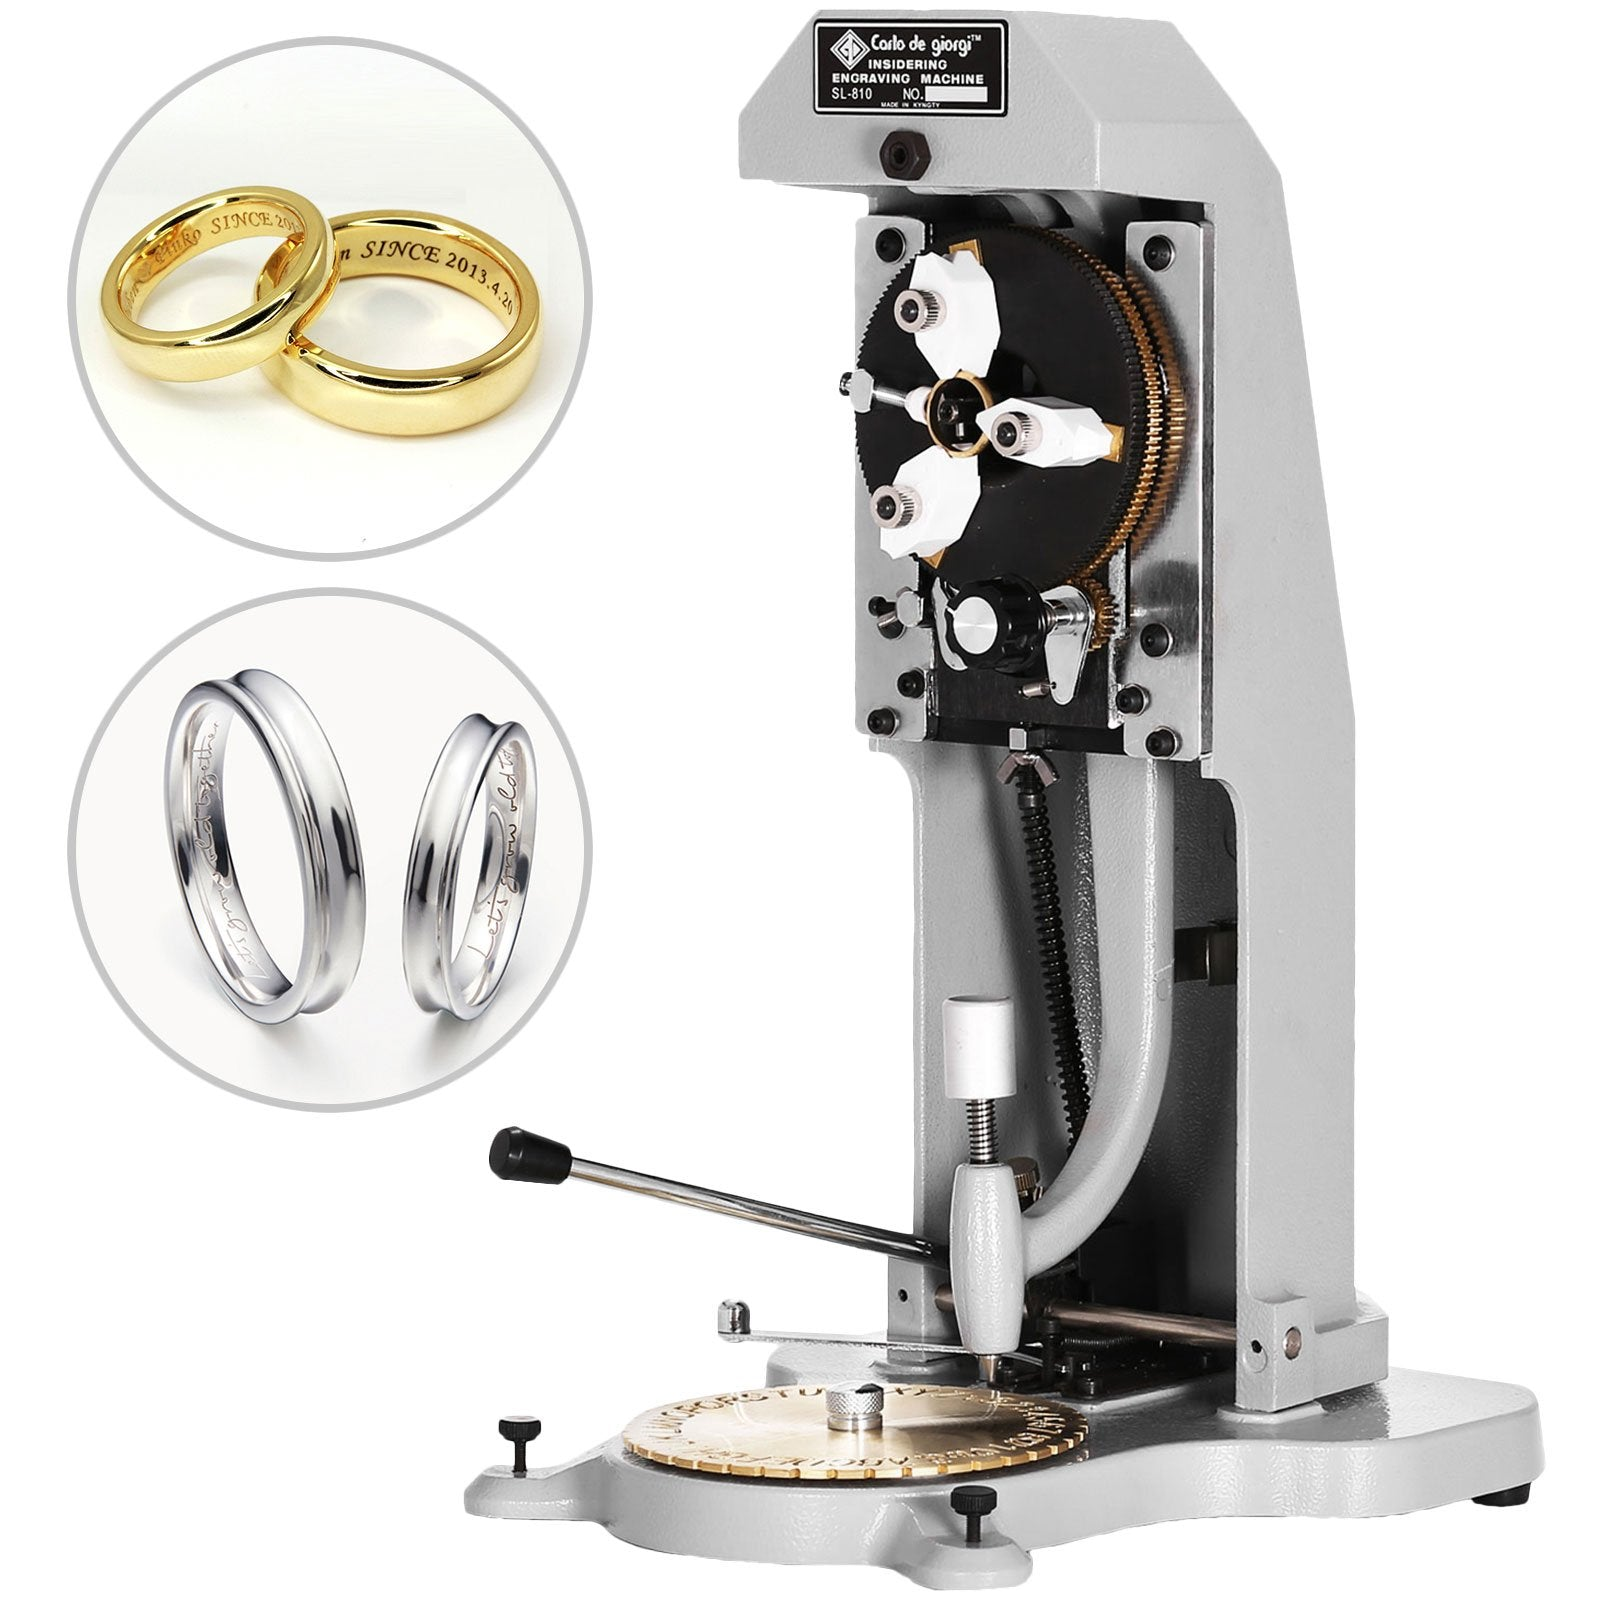 Ring Engraving Machine Con Doppia Sided Dial Macchina Per Incisione Metalli